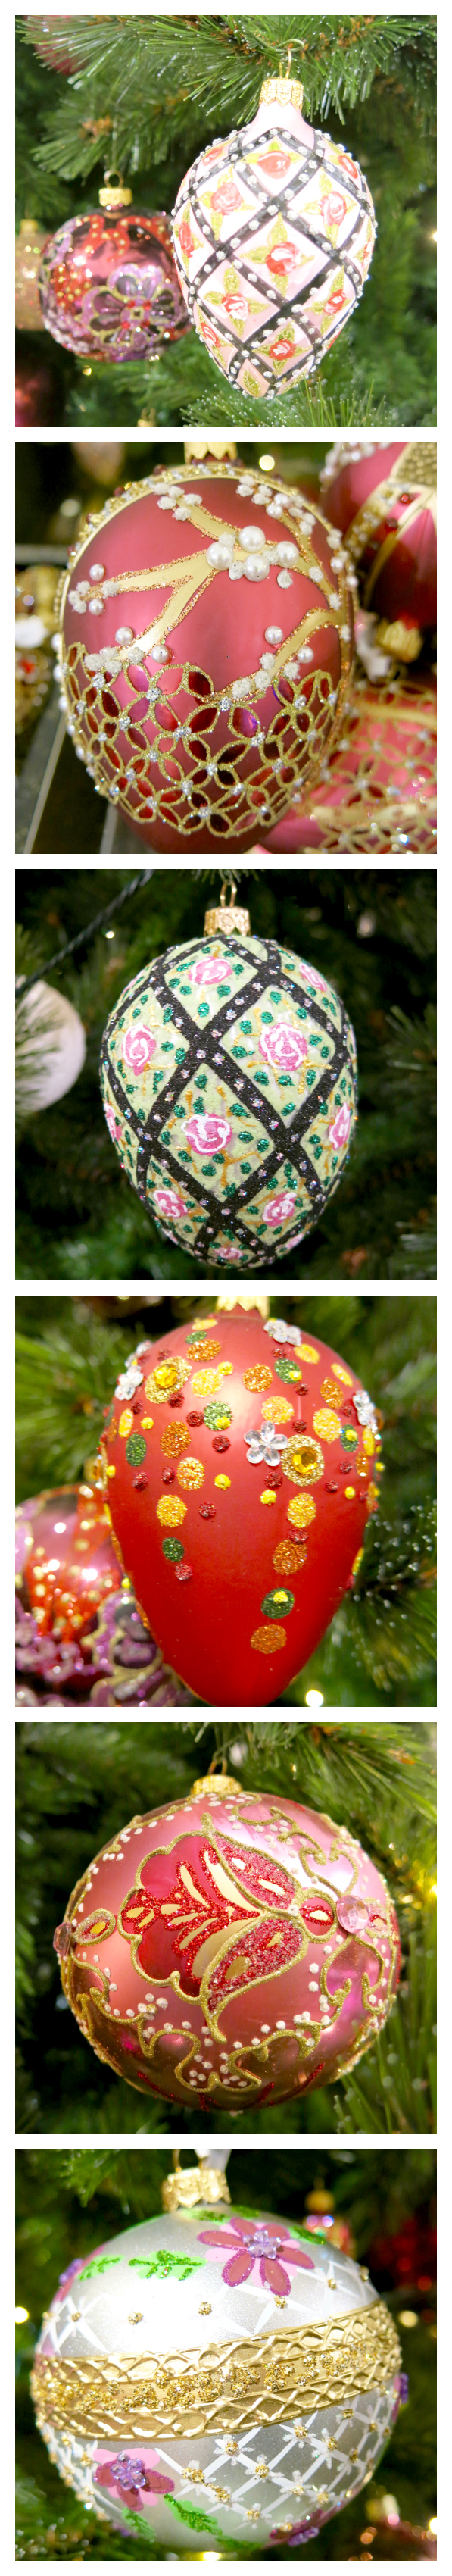 Faberge egg ornament collage